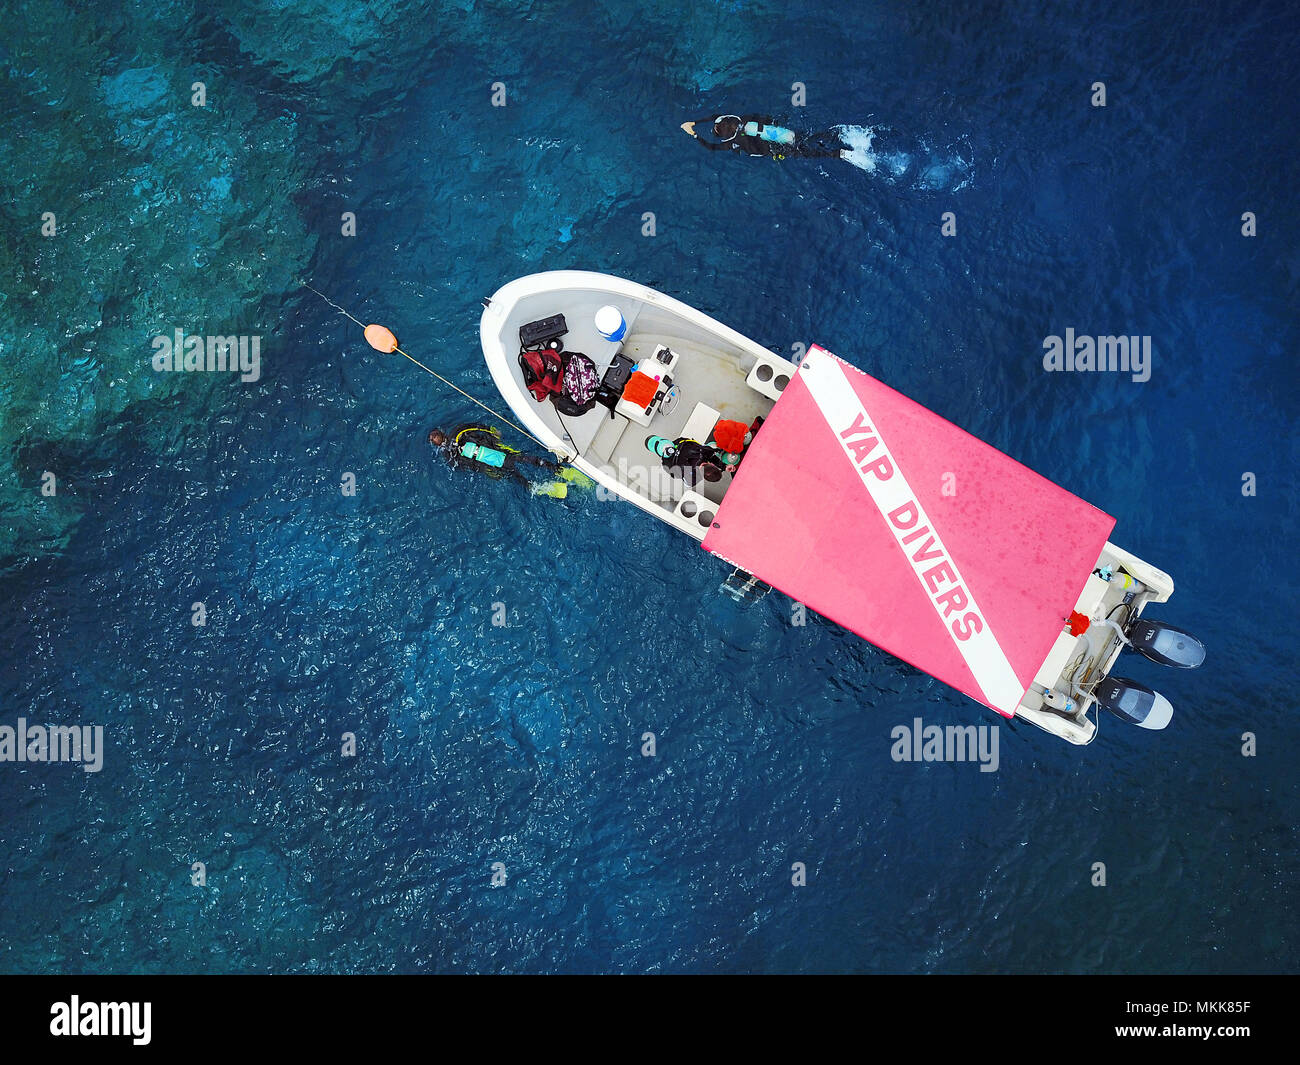 dive boat, diver, scuba diver, Yap Island, southern end, reef, lagoon, waves, corals, pacific ocean, sea view, drone photography, bird's eye view, Yap - Stock Image